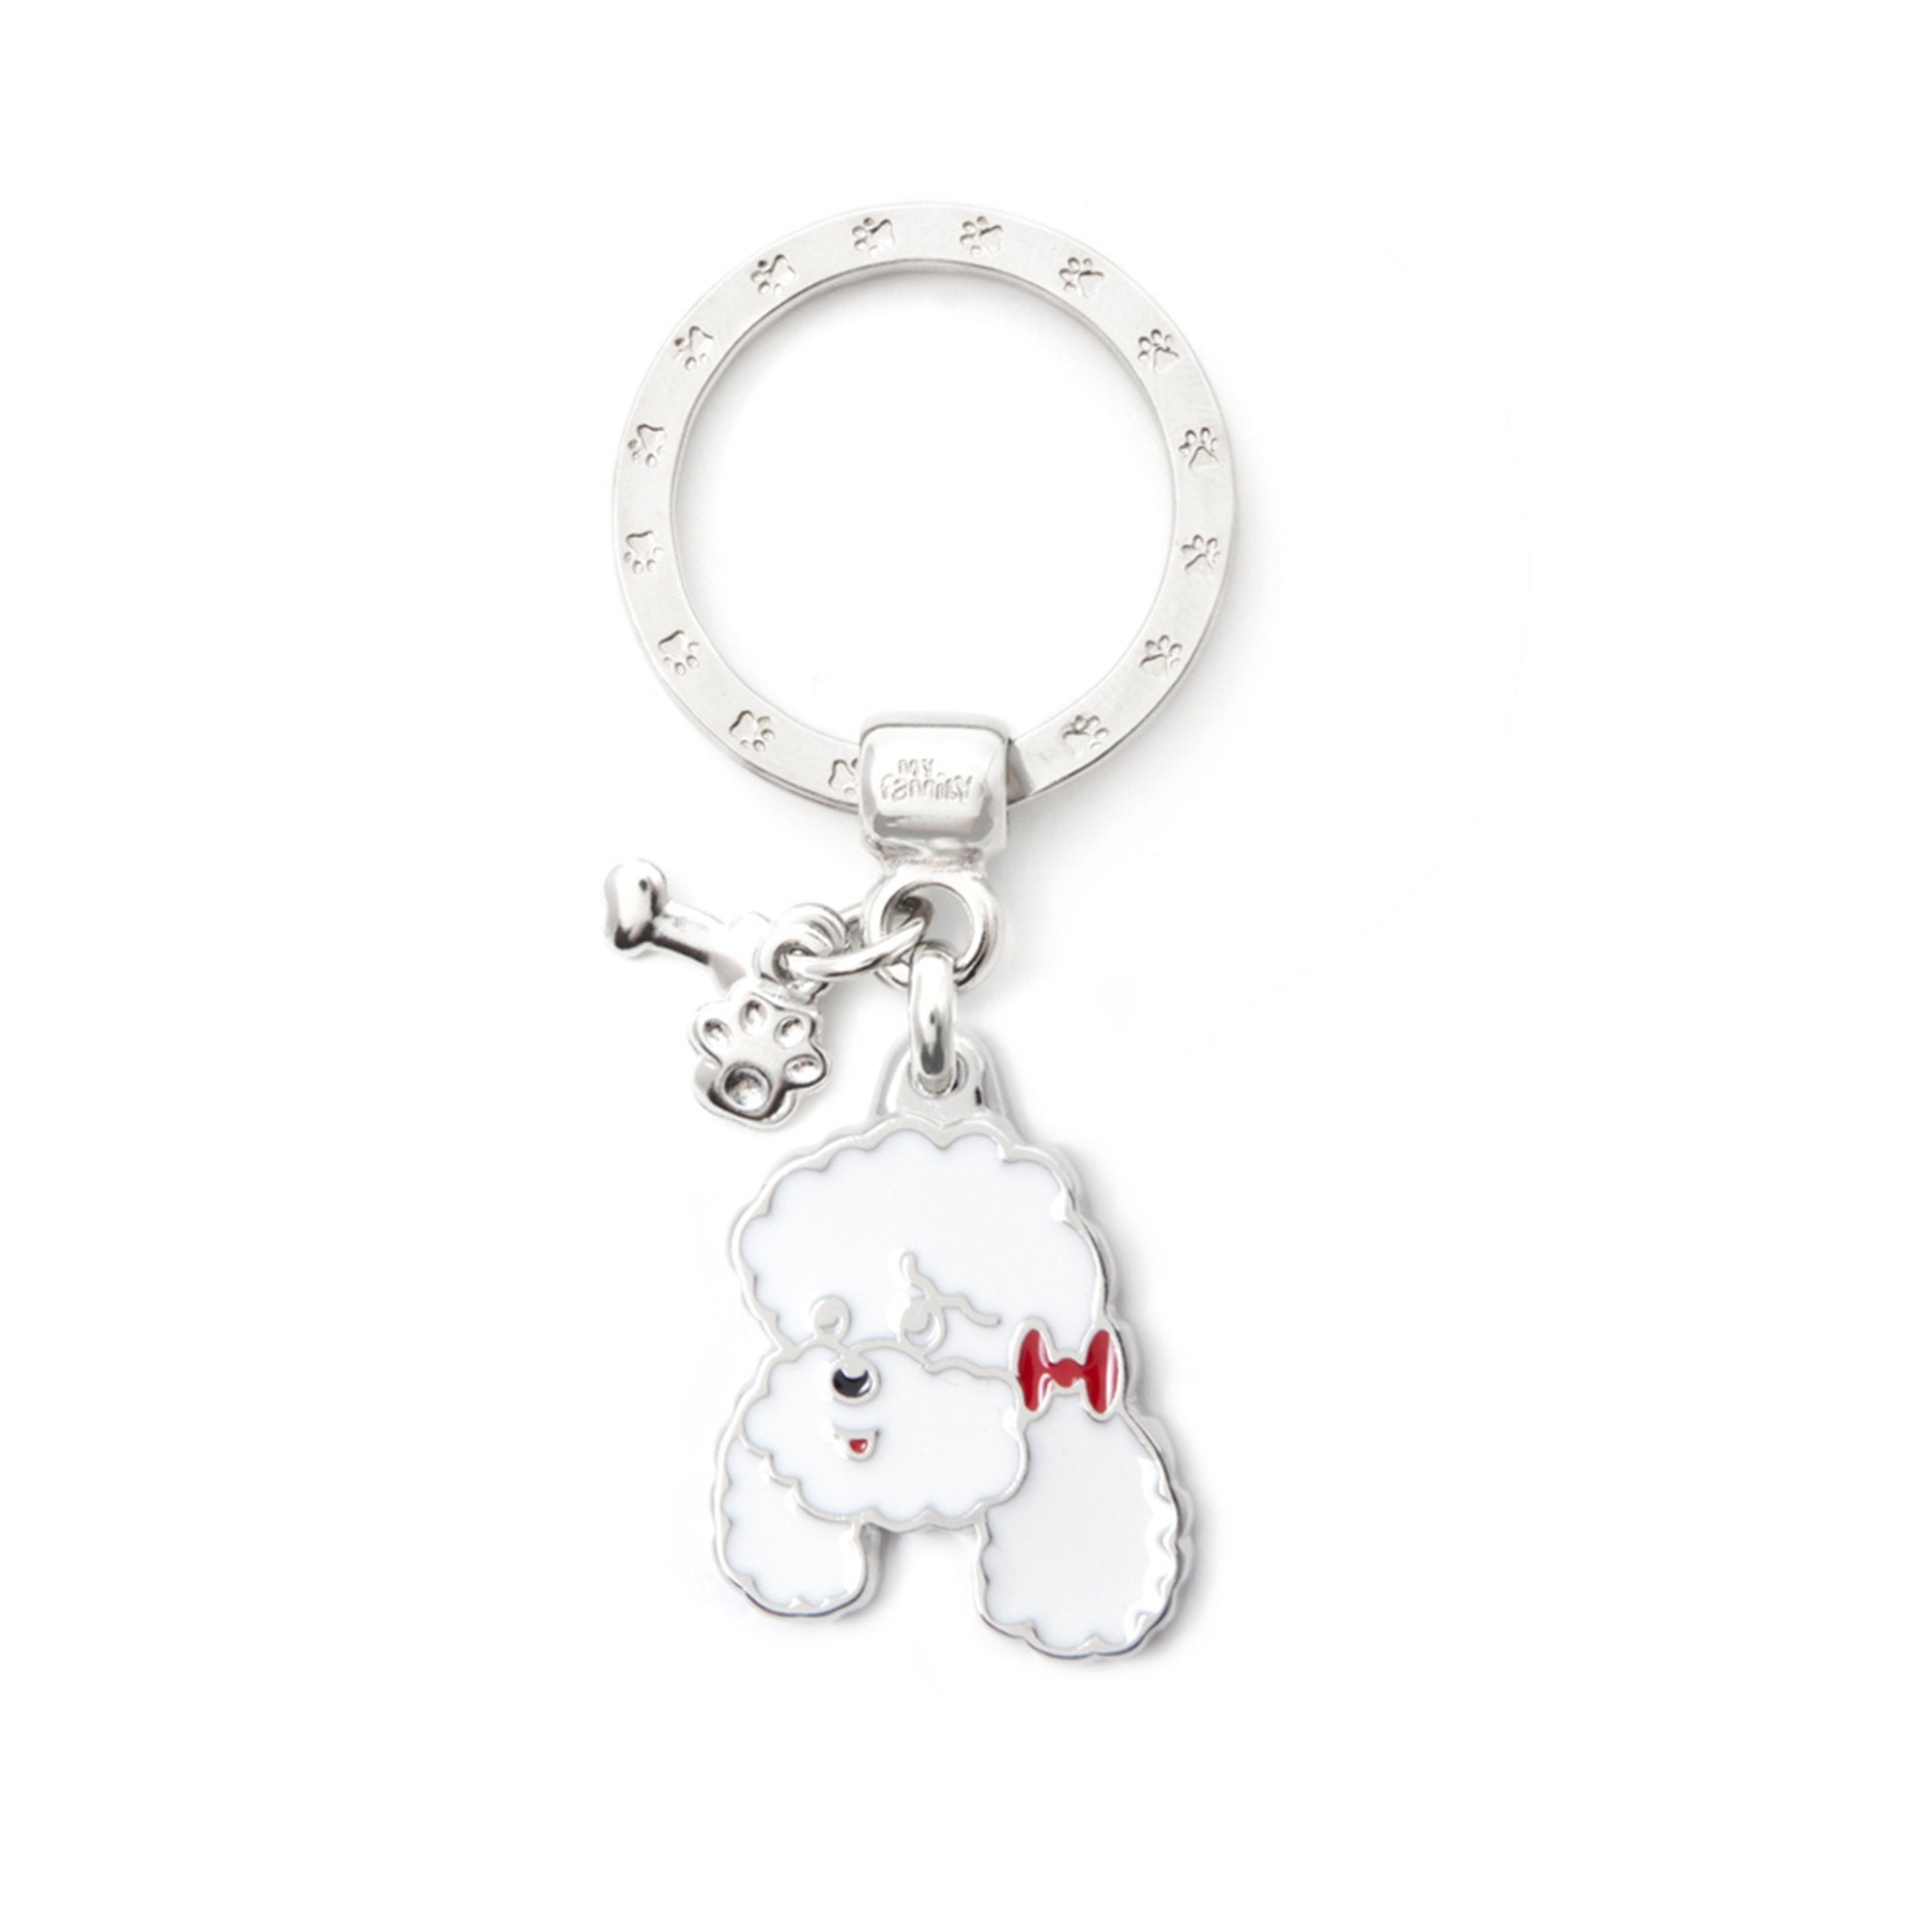 My Family White Poodle Pendant and Keychain